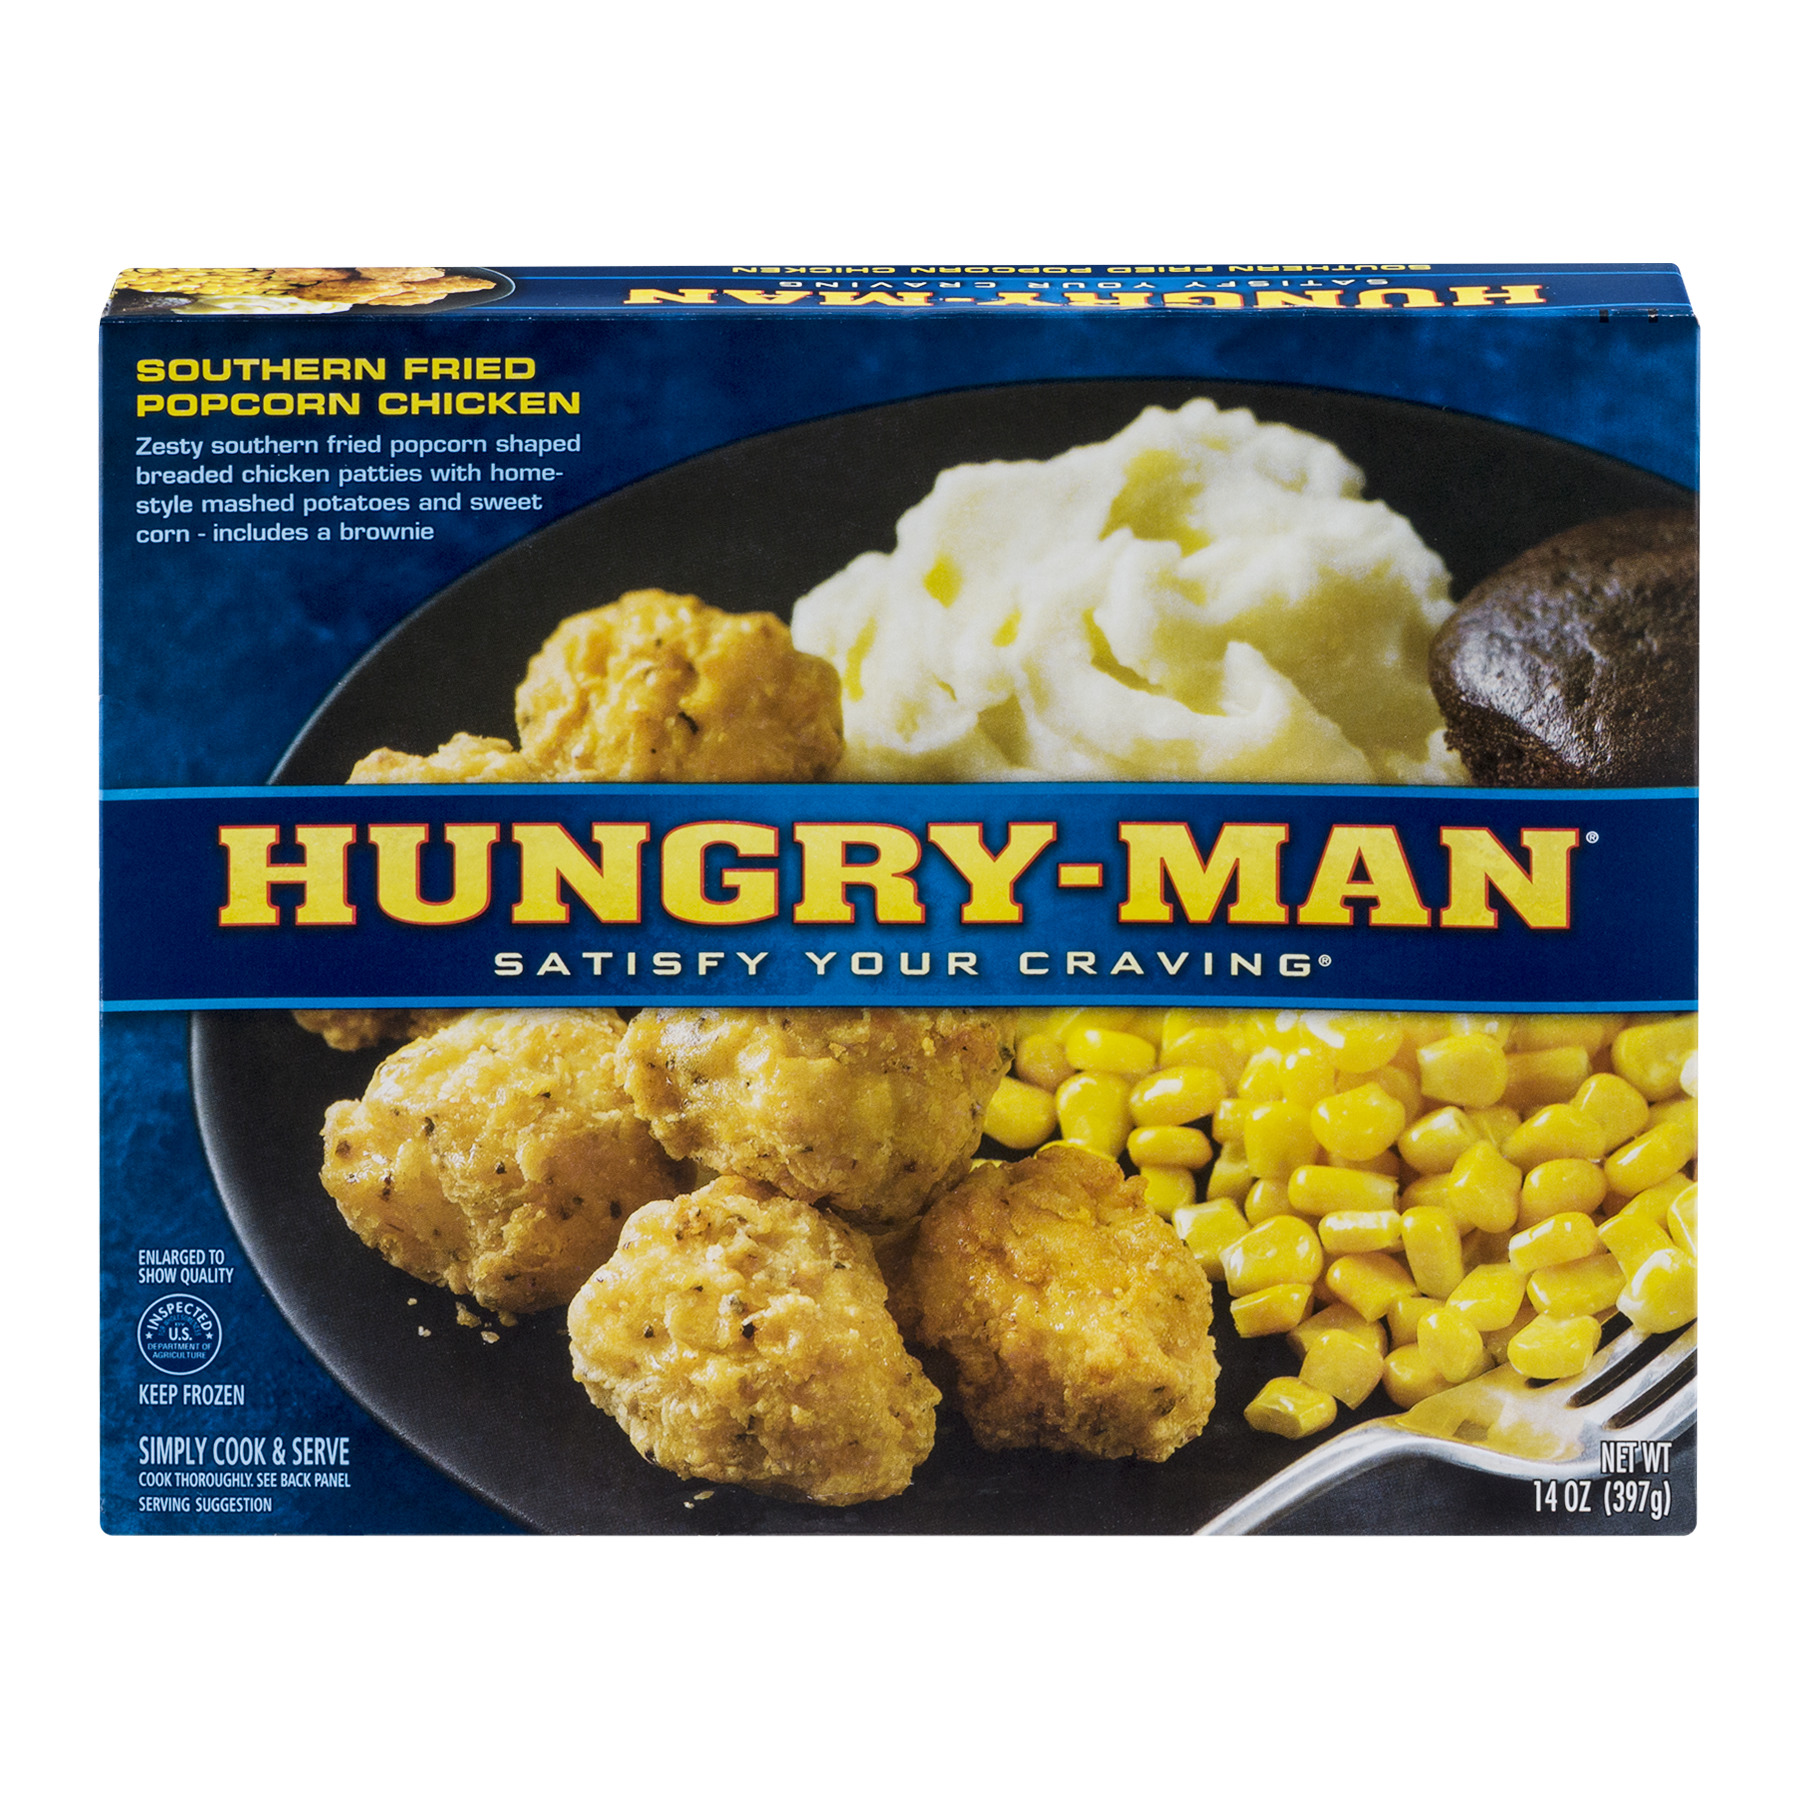 Hungry-Man® Southern Fried Popcorn Chicken 14 oz. Box